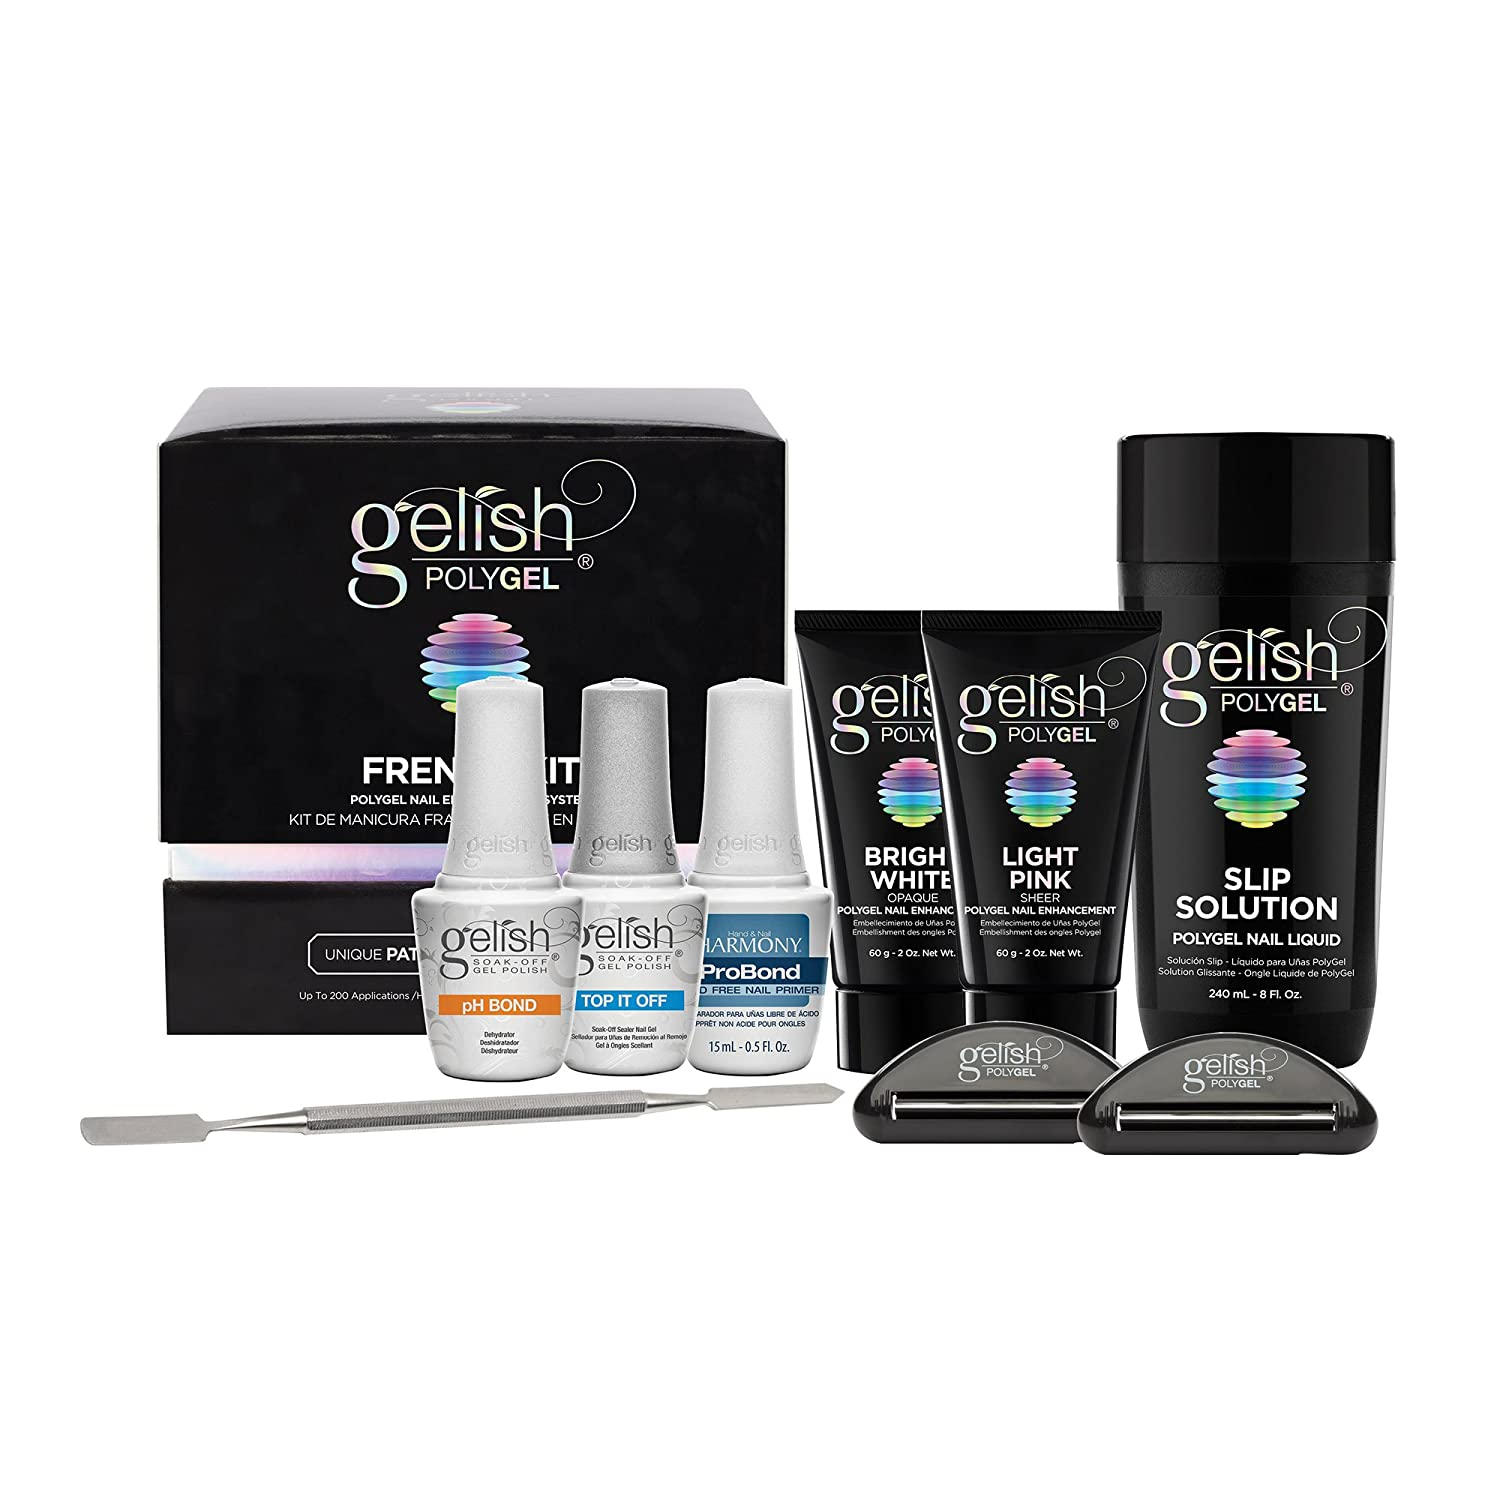 Gelish Gelish polygel french kit, 1 count